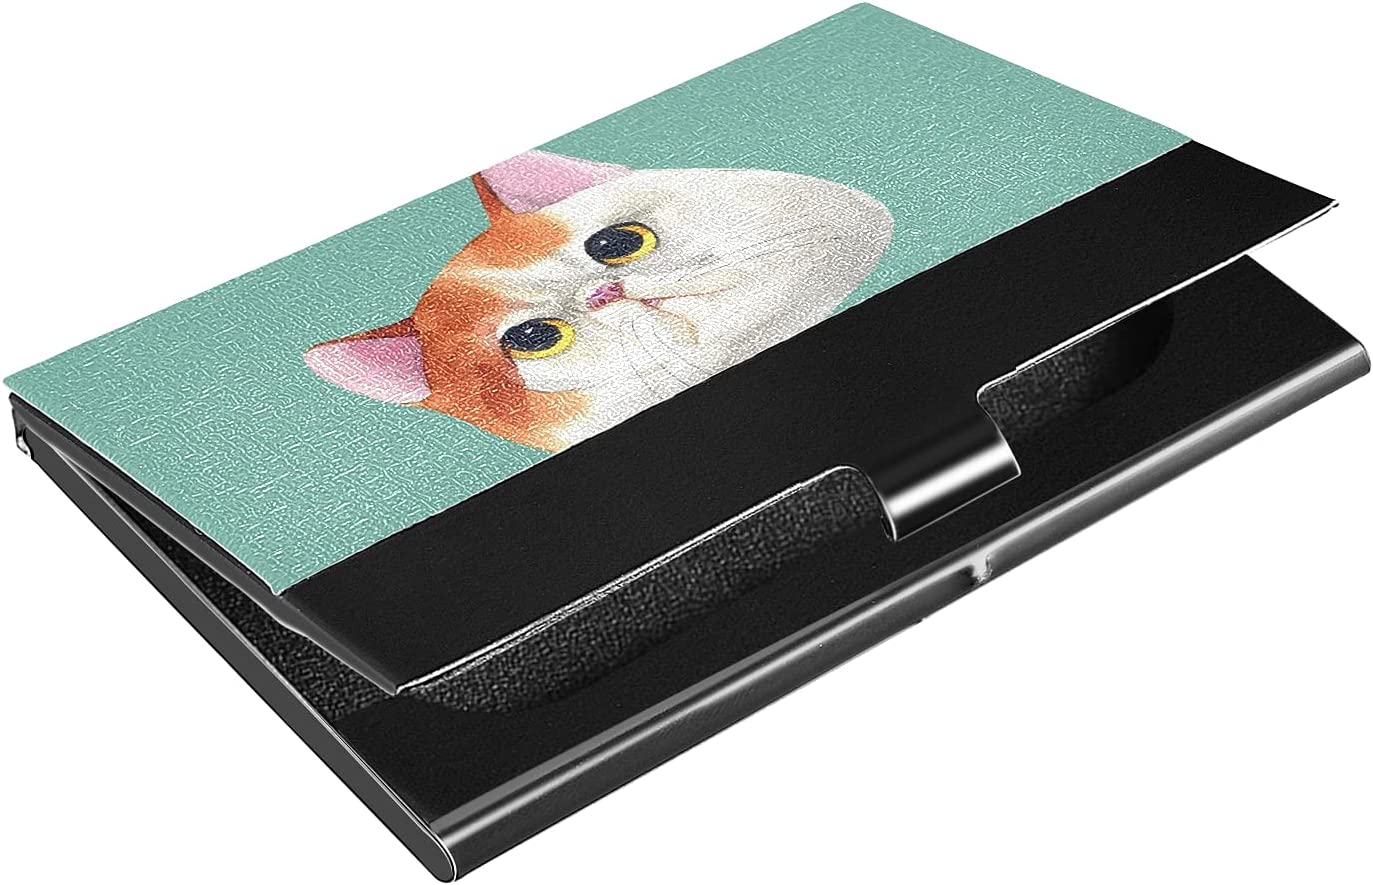 OTVEE Watercolor Cute Cat Business Card Holder Wallet Stainless Steel & Leather Pocket Business Card Case Organizer Slim Name Card ID Card Holders Credit Card Wallet Carrier Purse for Women Men